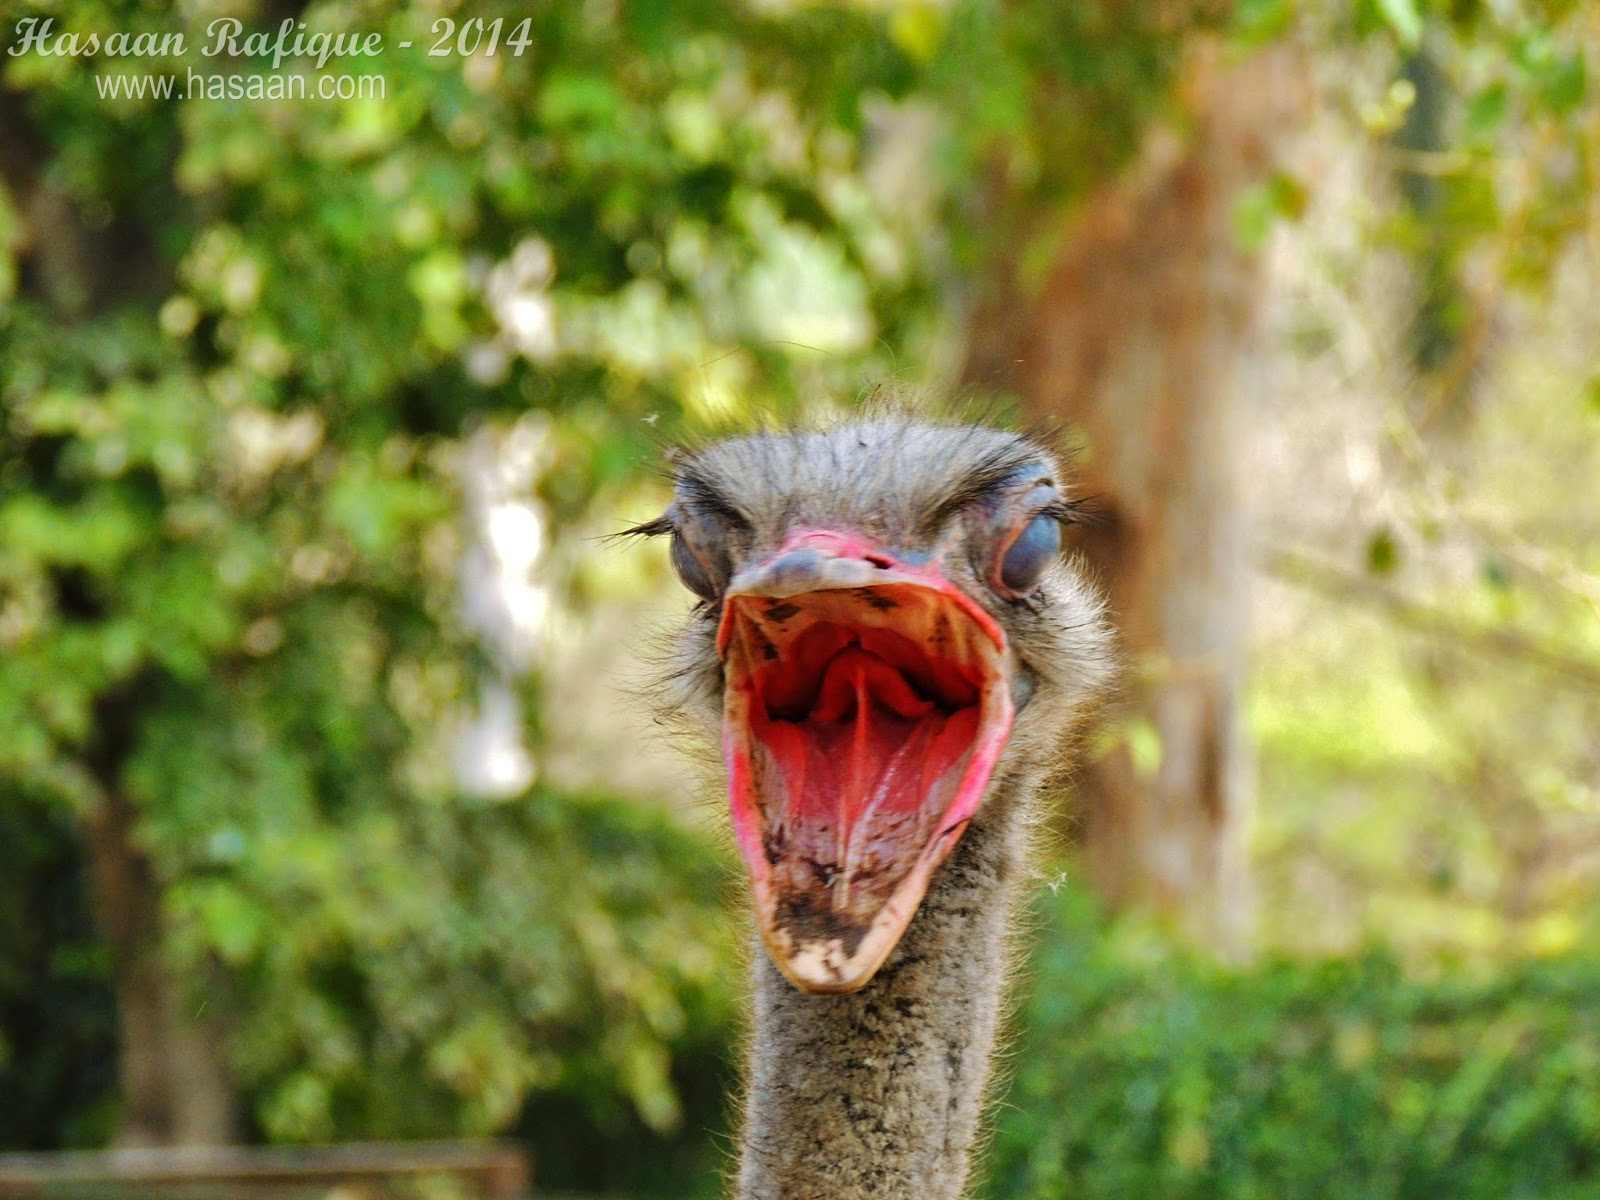 An ostrich captured in a quick fleeting moment.